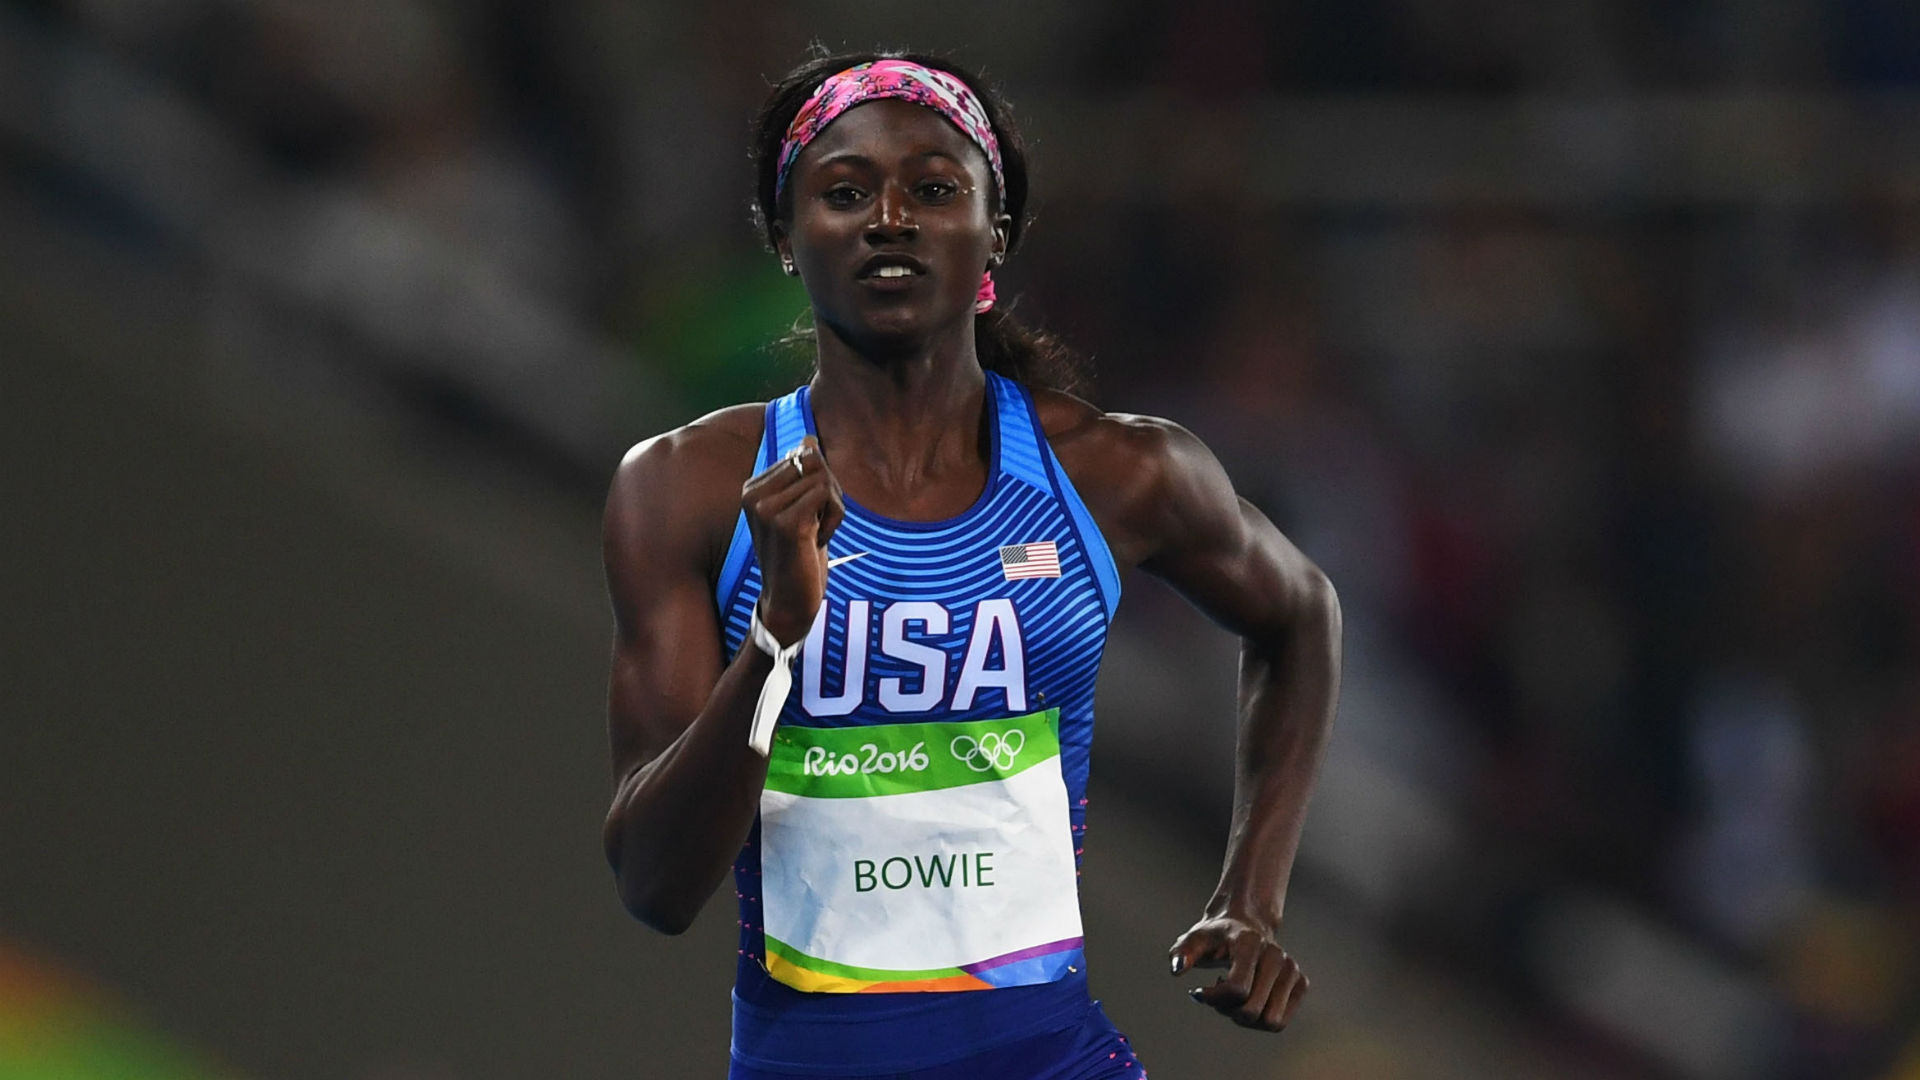 Rio Olympics 2016: With Allyson Felix out, Tori Bowie carries U.S ...